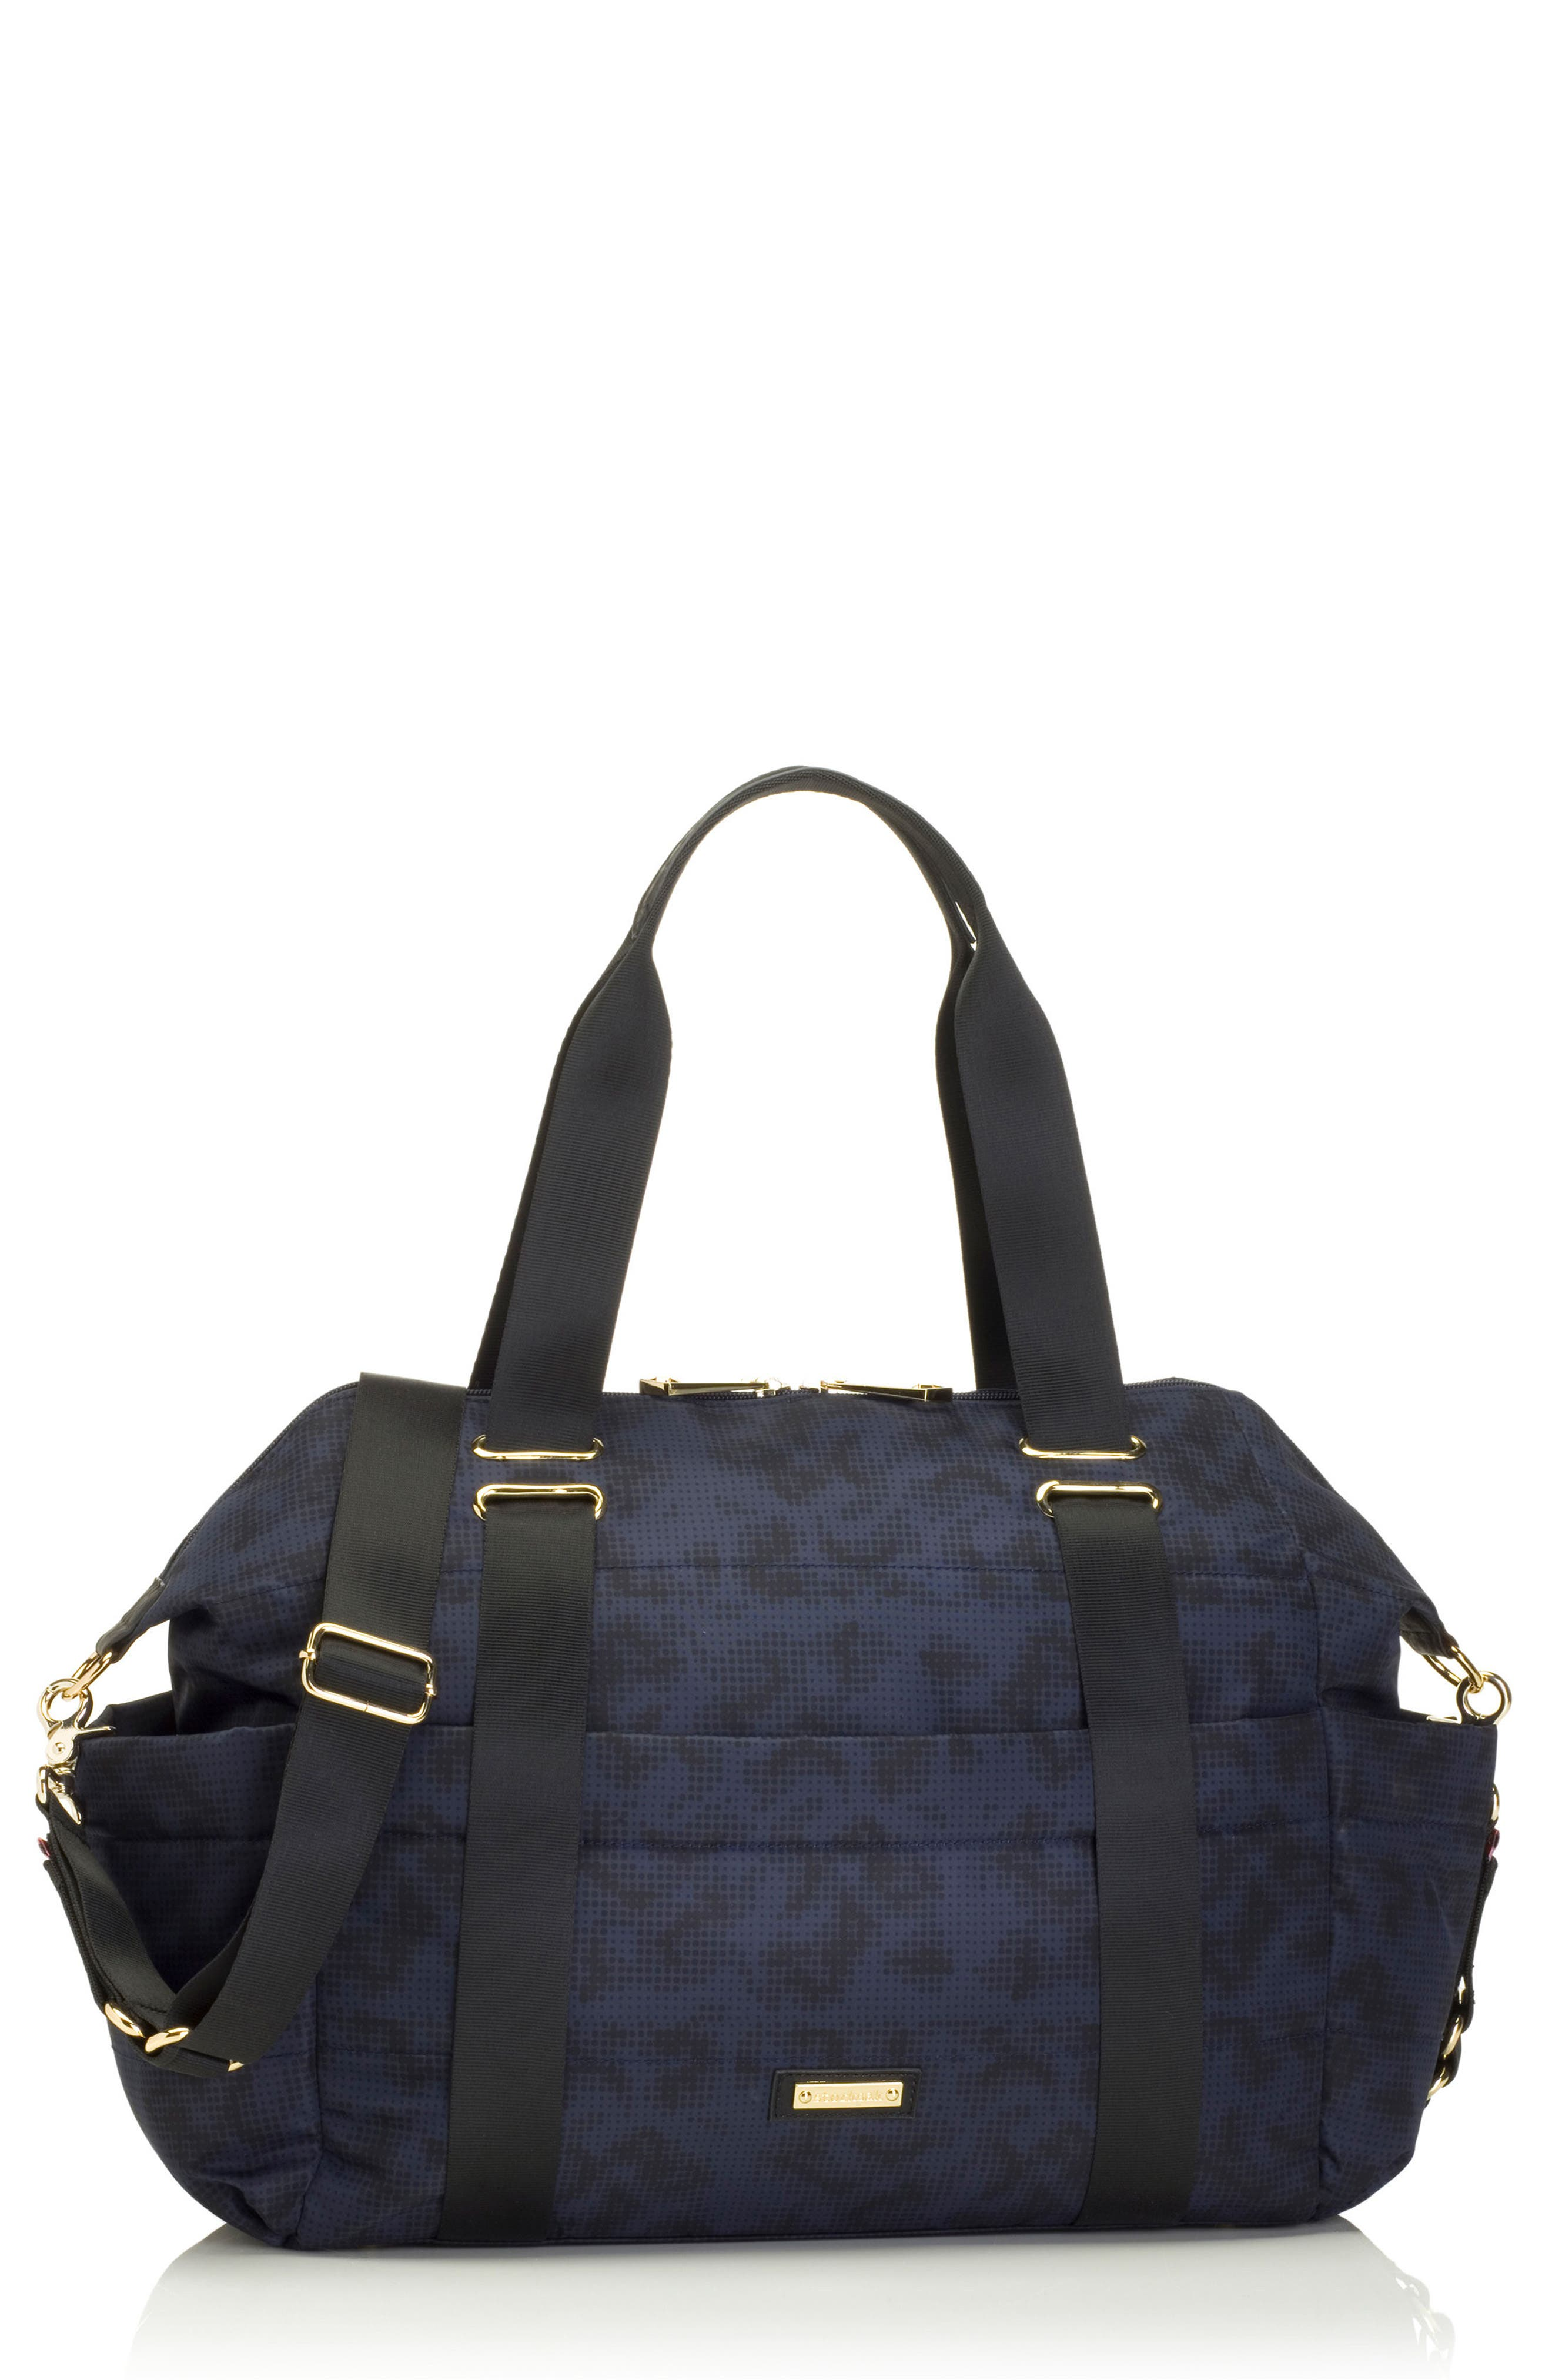 Storksak 'Sandy' Diaper Bag